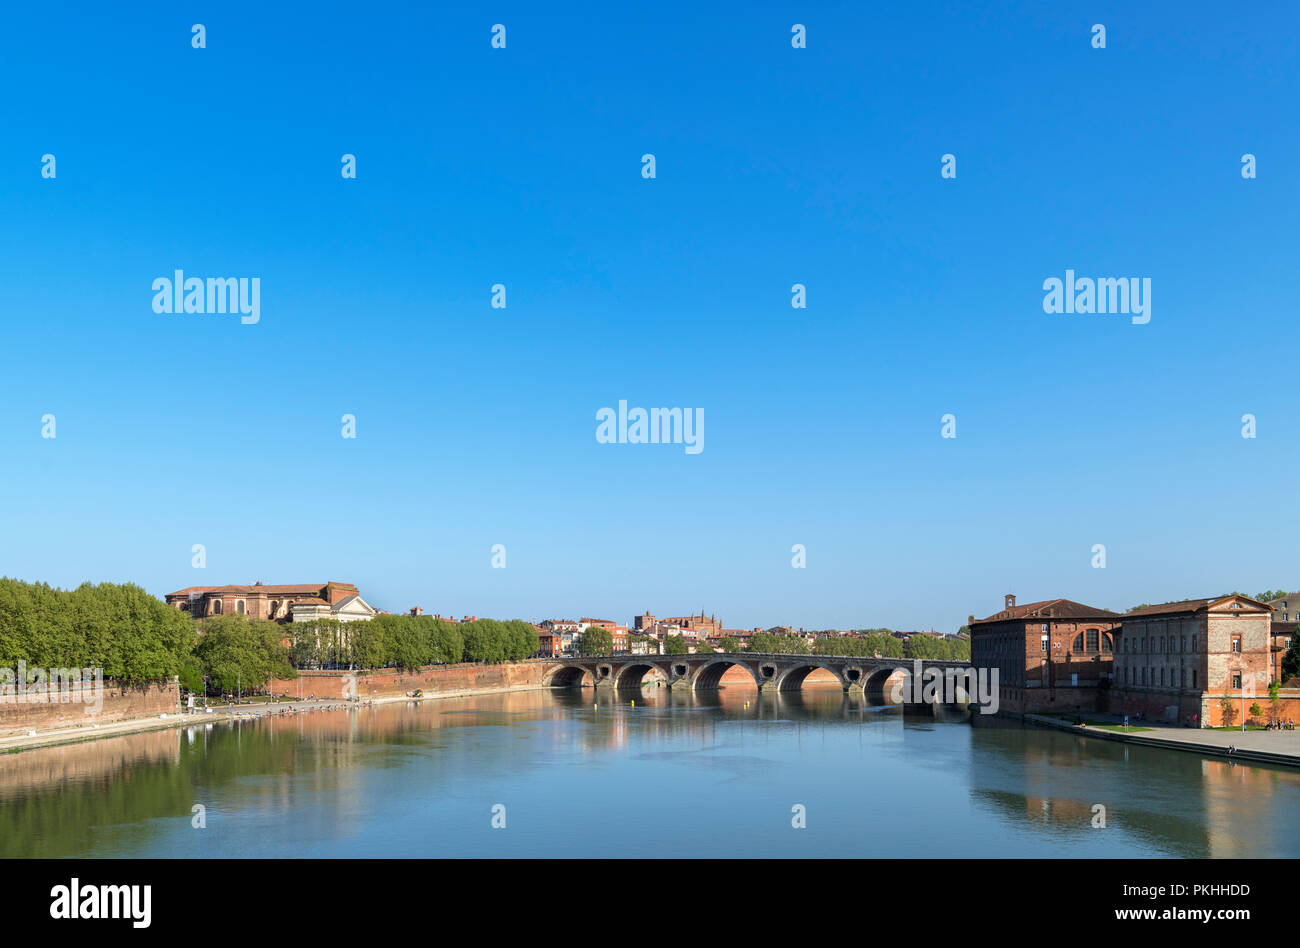 View from the Pont Saint-Pierre (St Pierre Bridge) over the River Garonne looking towards the Pont Neuf,Toulouse, Languedoc, France - Stock Image